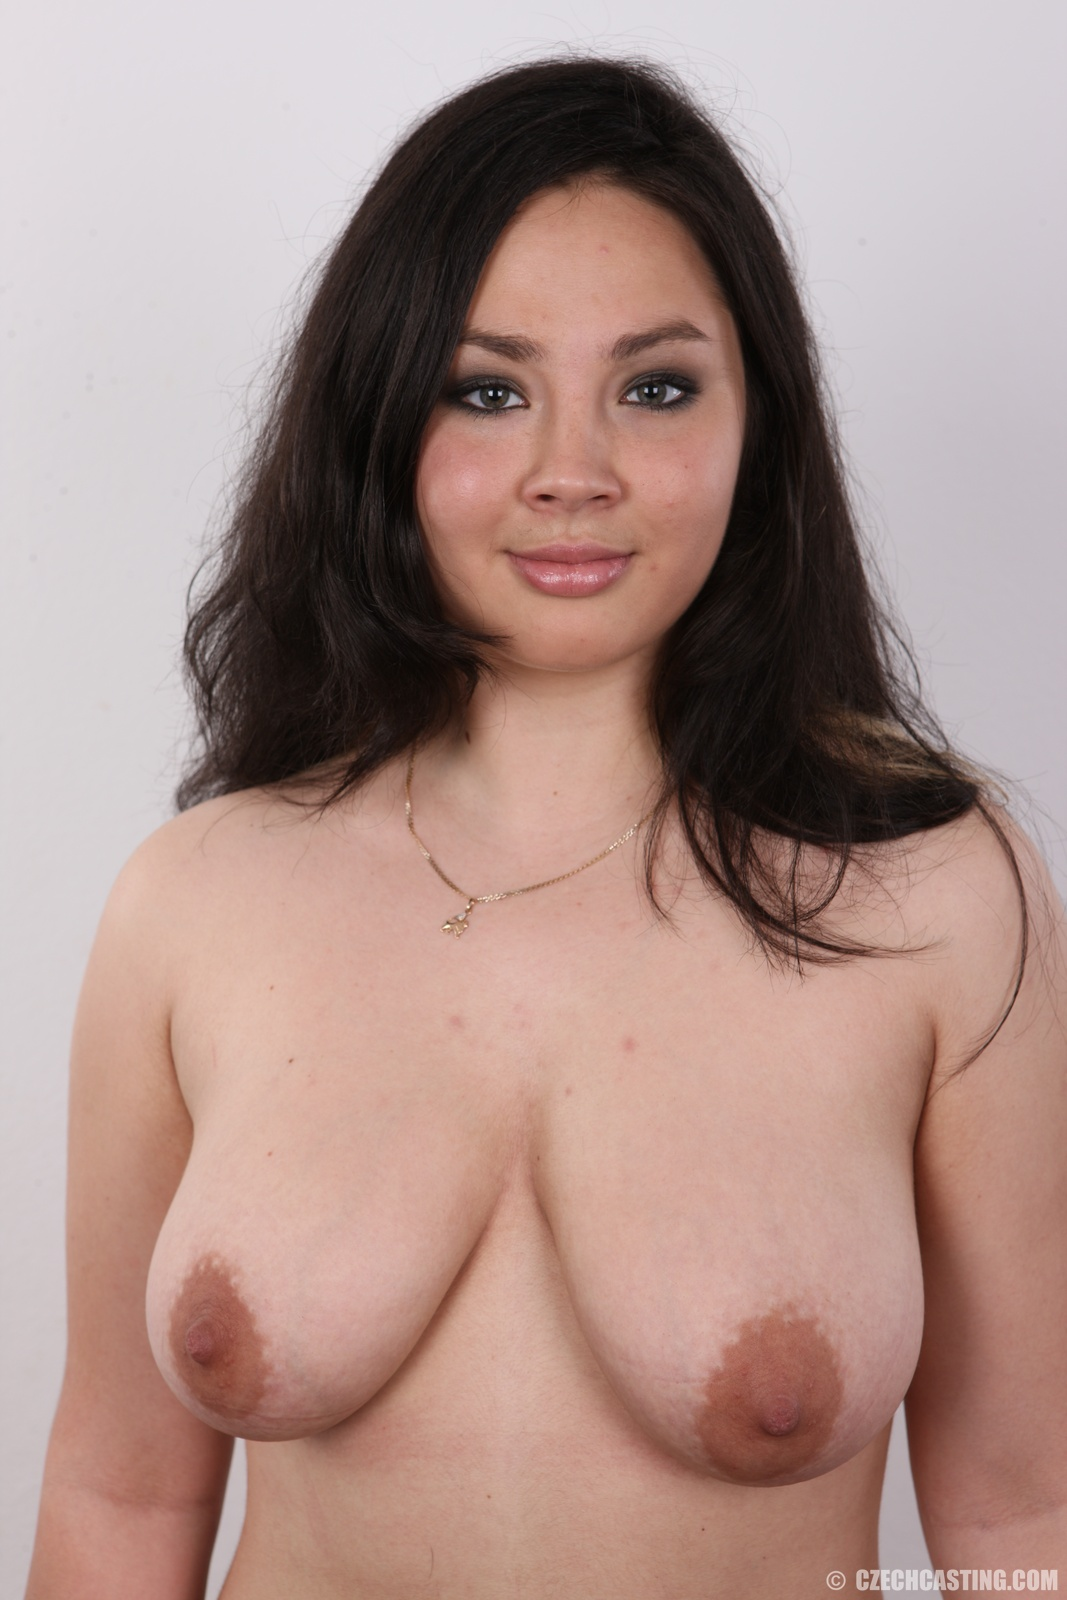 image Chubby busty saggy girl with cute face